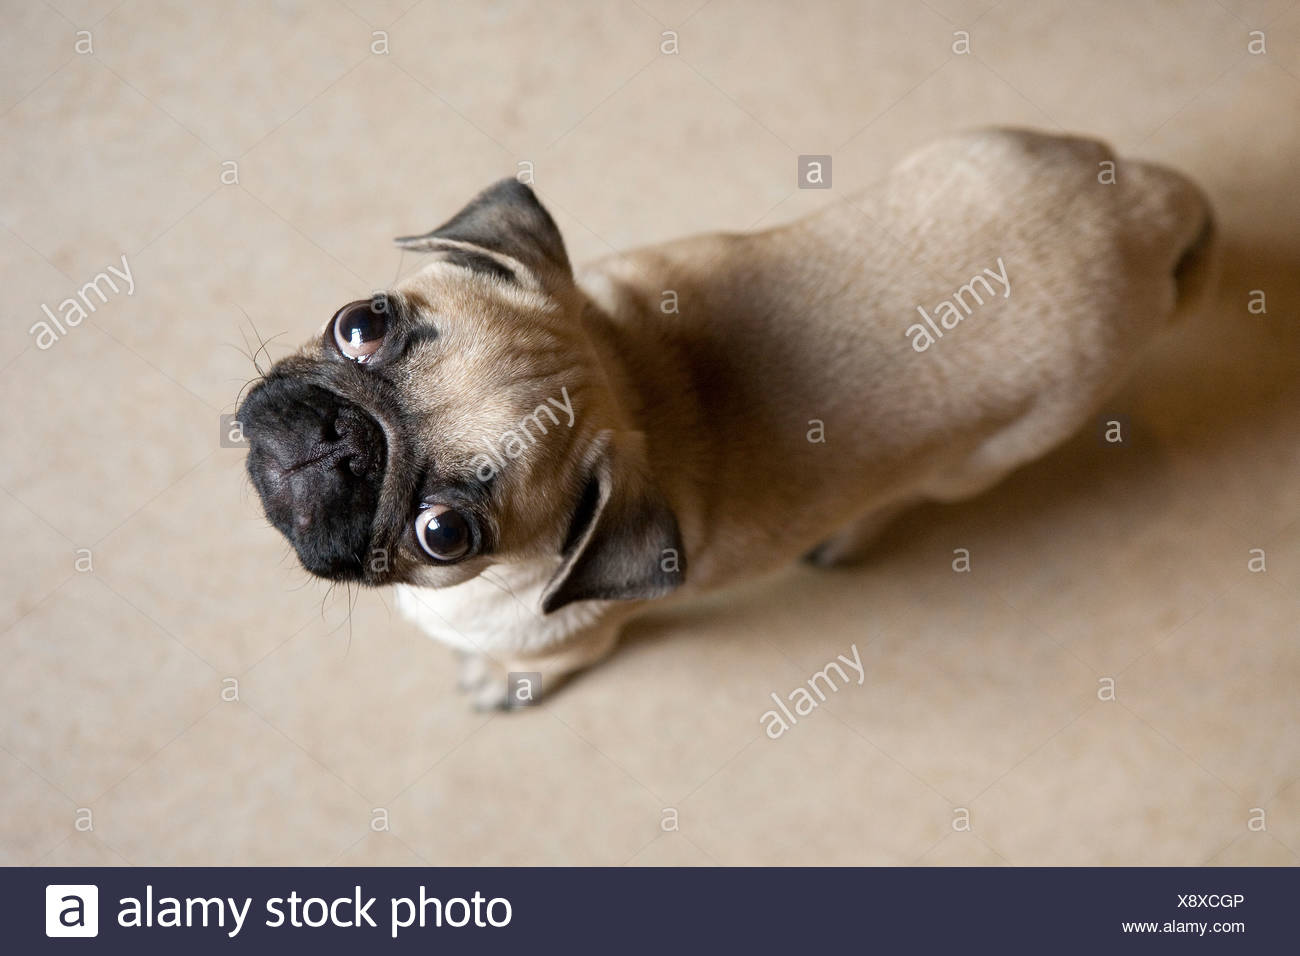 A pug puppy on the floor paying attention to the camera - Stock Image